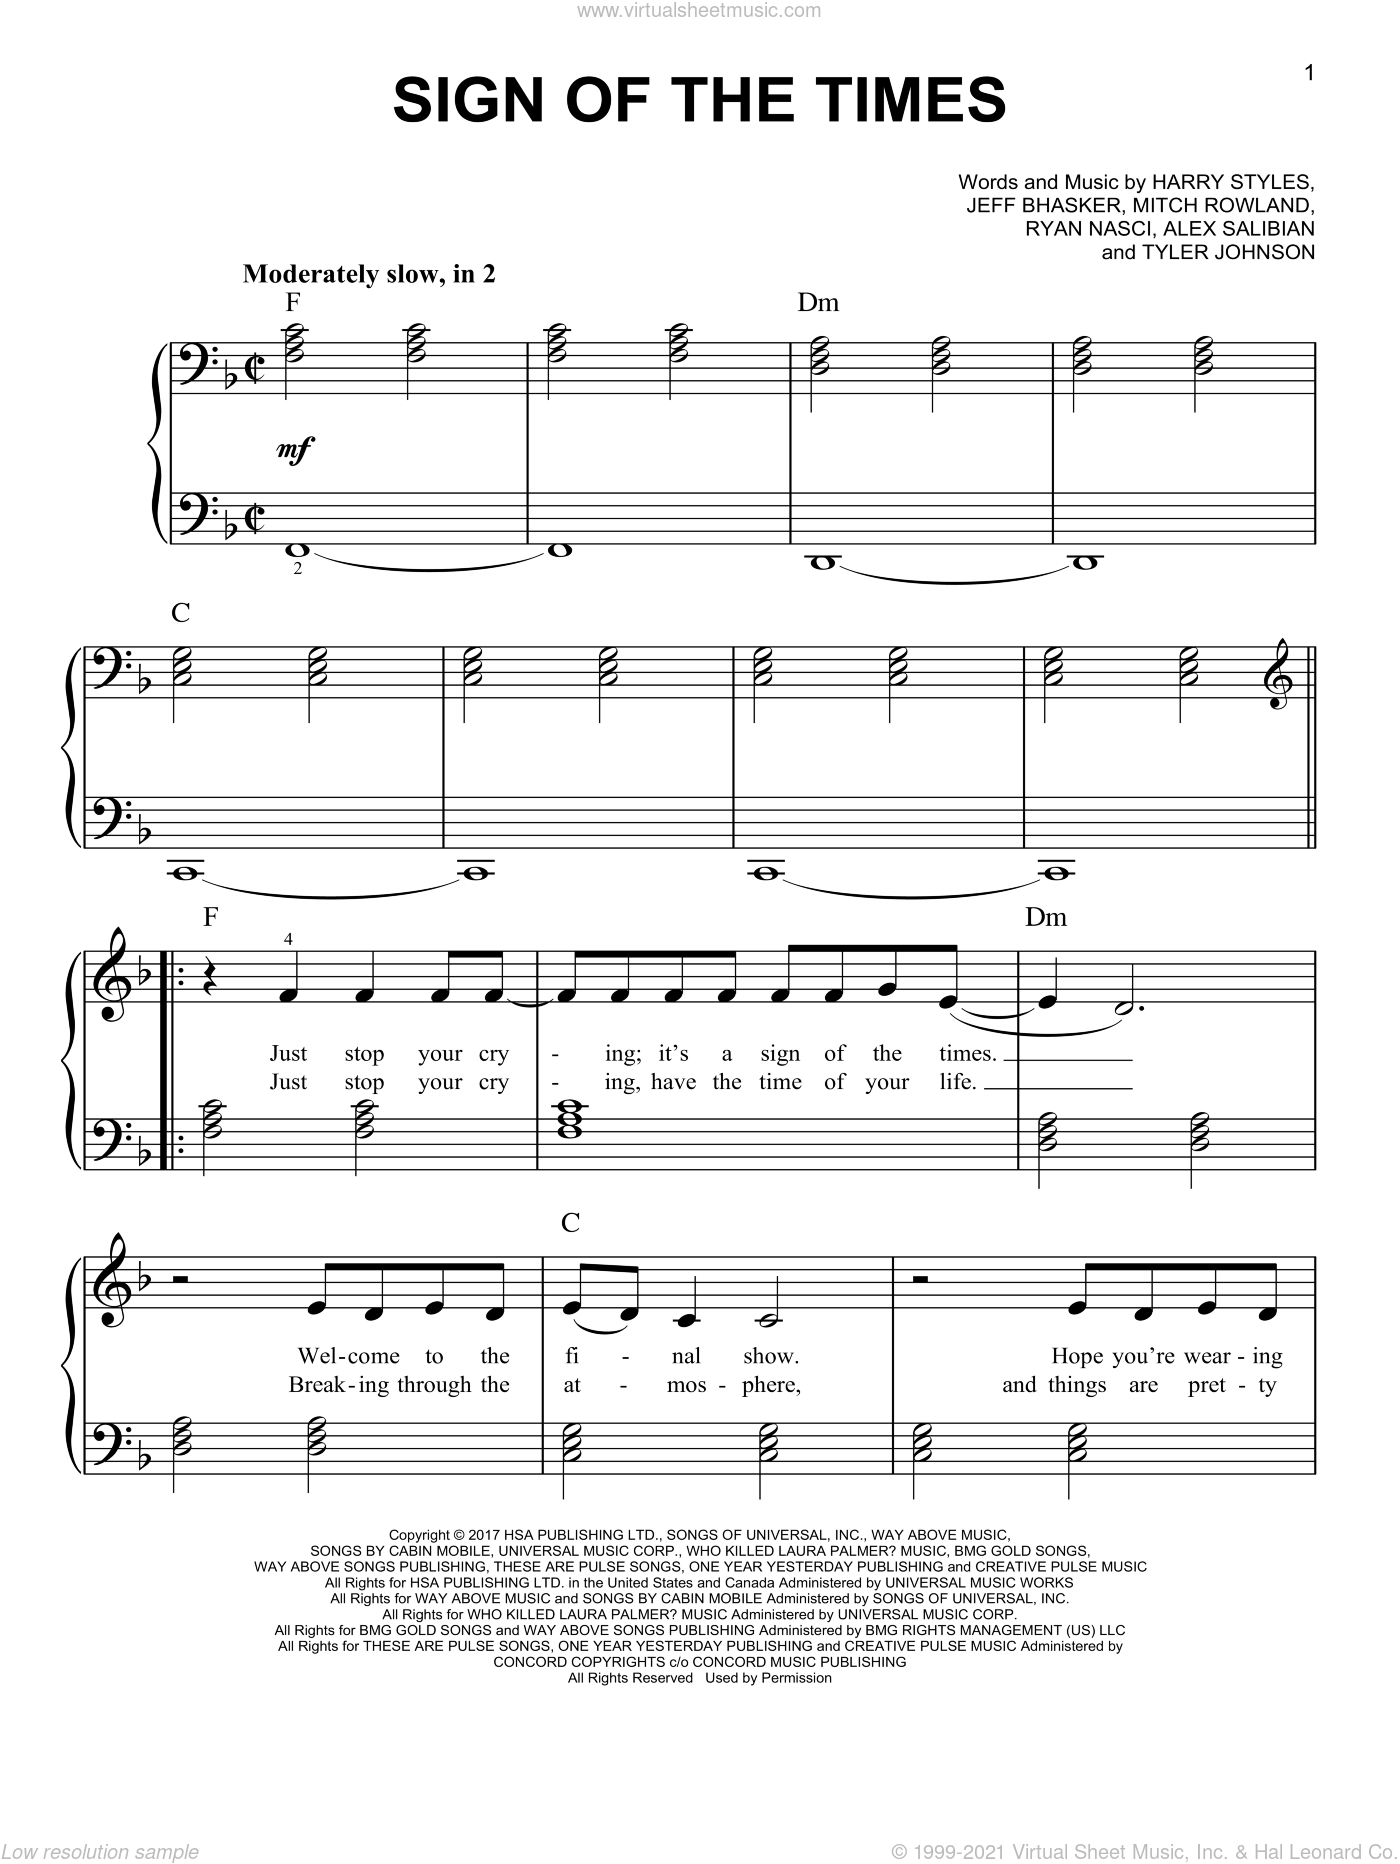 Sign Of The Times sheet music for piano solo by Harry Styles, Alex Salibian, Jeff Bhasker, Mitch Rowland, Ryan Nasci and Tyler Johnson, easy skill level